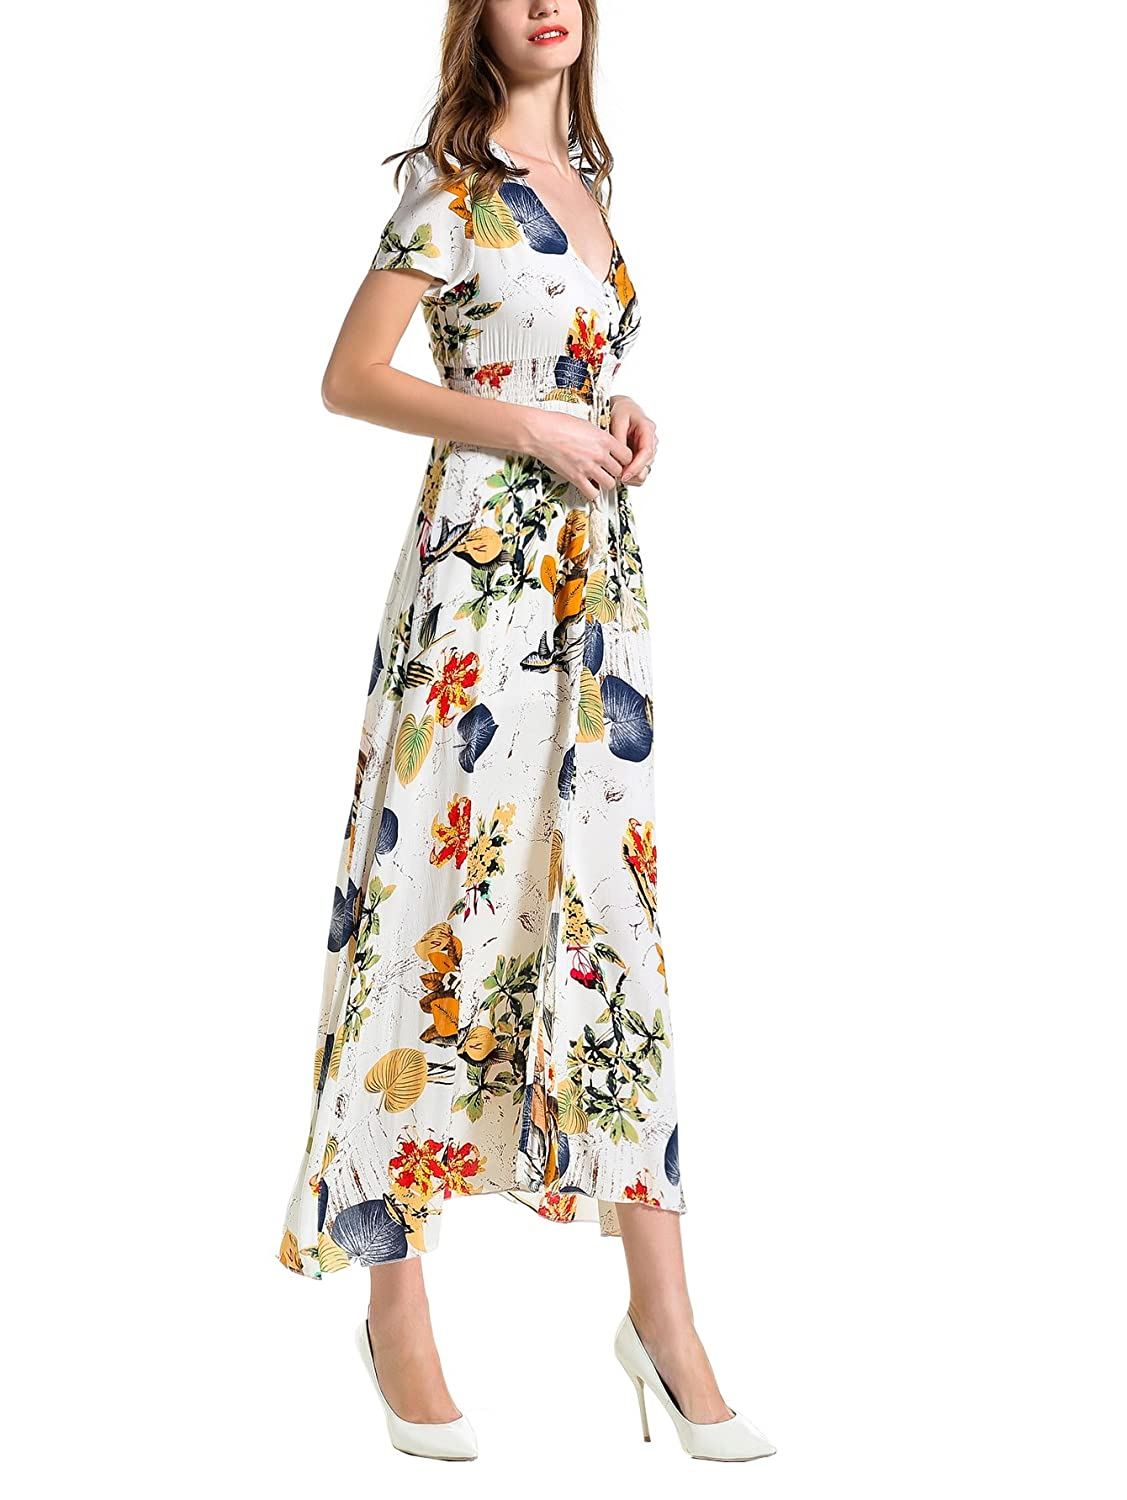 ANGELADY Bohemian Women Button Up Split Floral Print Short Sleeve Beach Maxi Dress at Amazon Womens Clothing store: